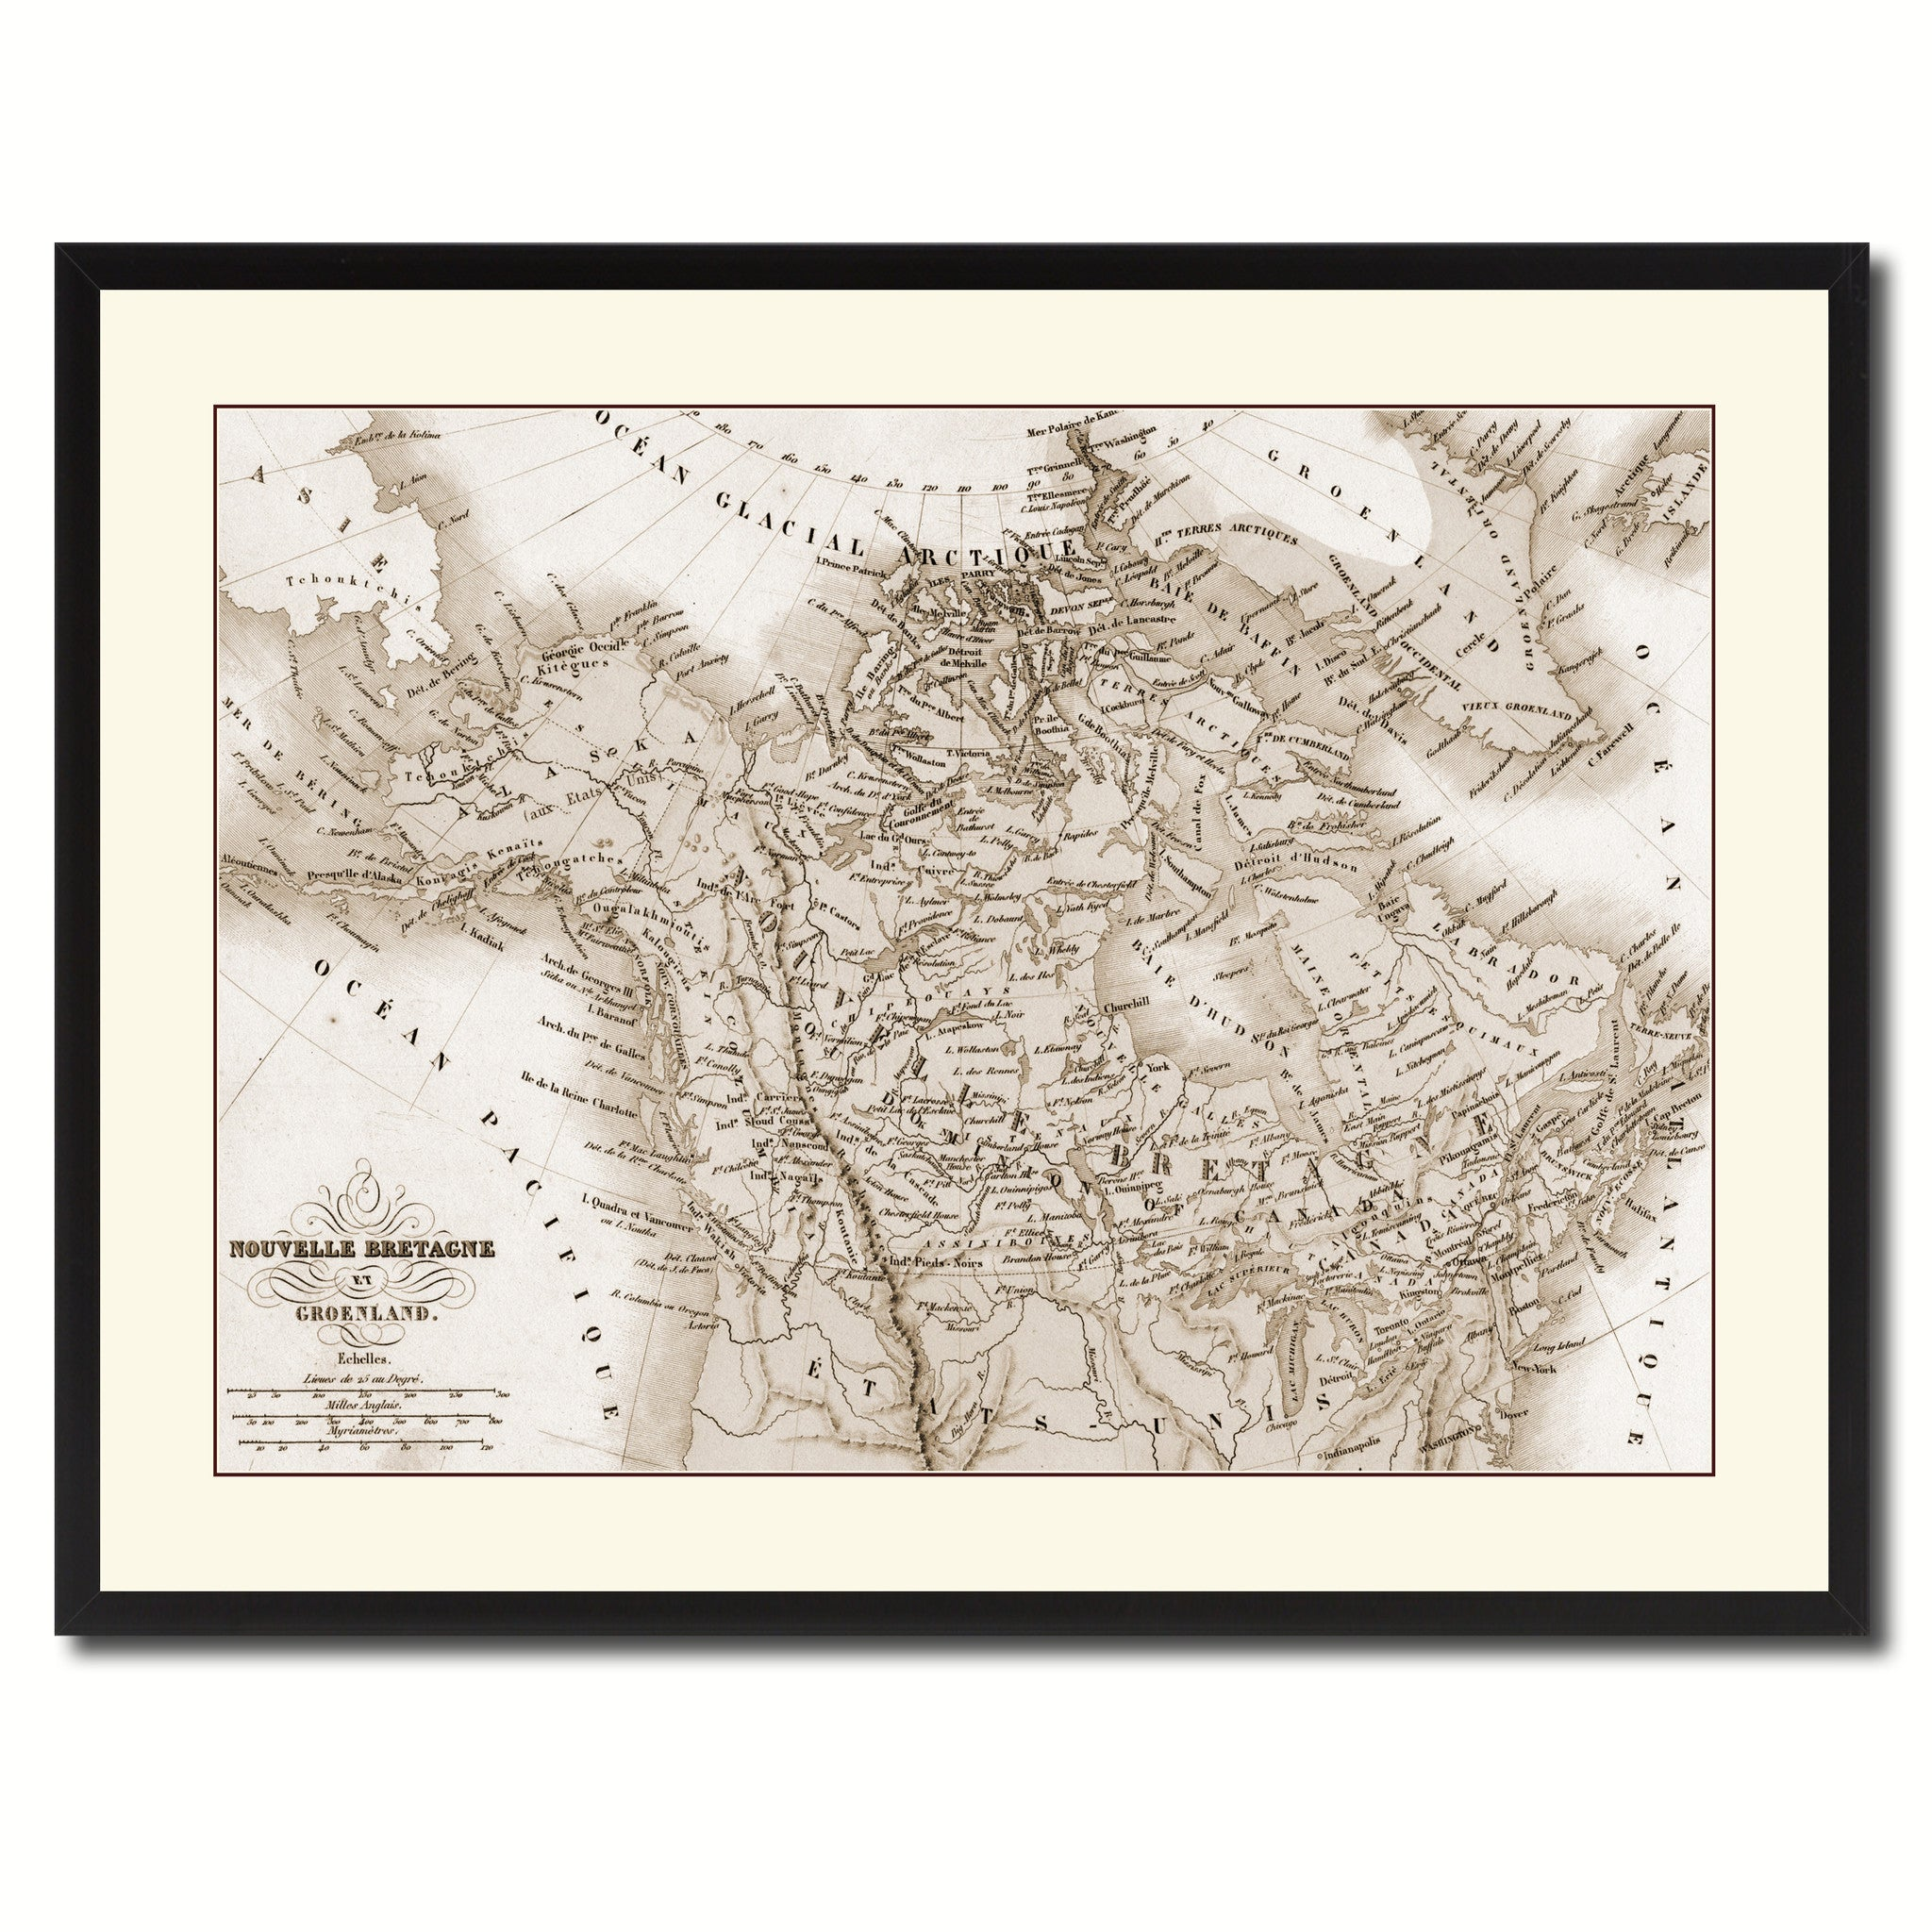 Canada Alaska Vintage Sepia Map Canvas Print, Picture Frame Gifts Home Decor Wall Art Decoration